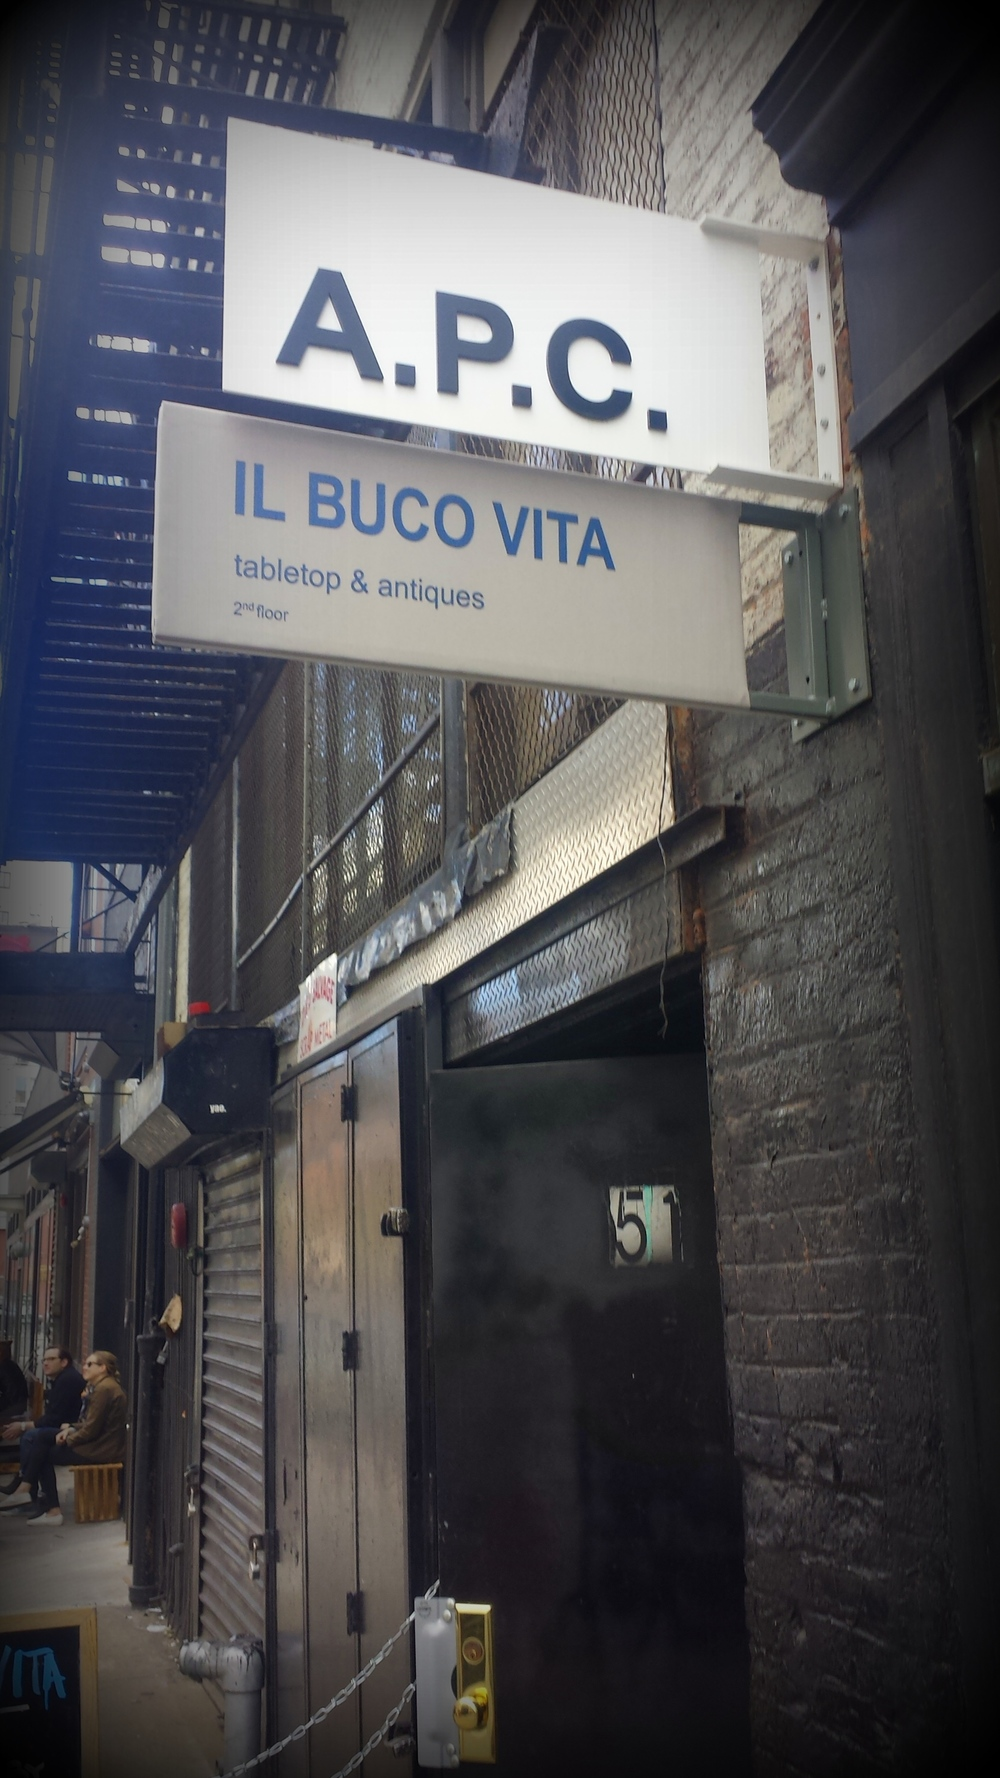 The entrance into Il Buco Vita